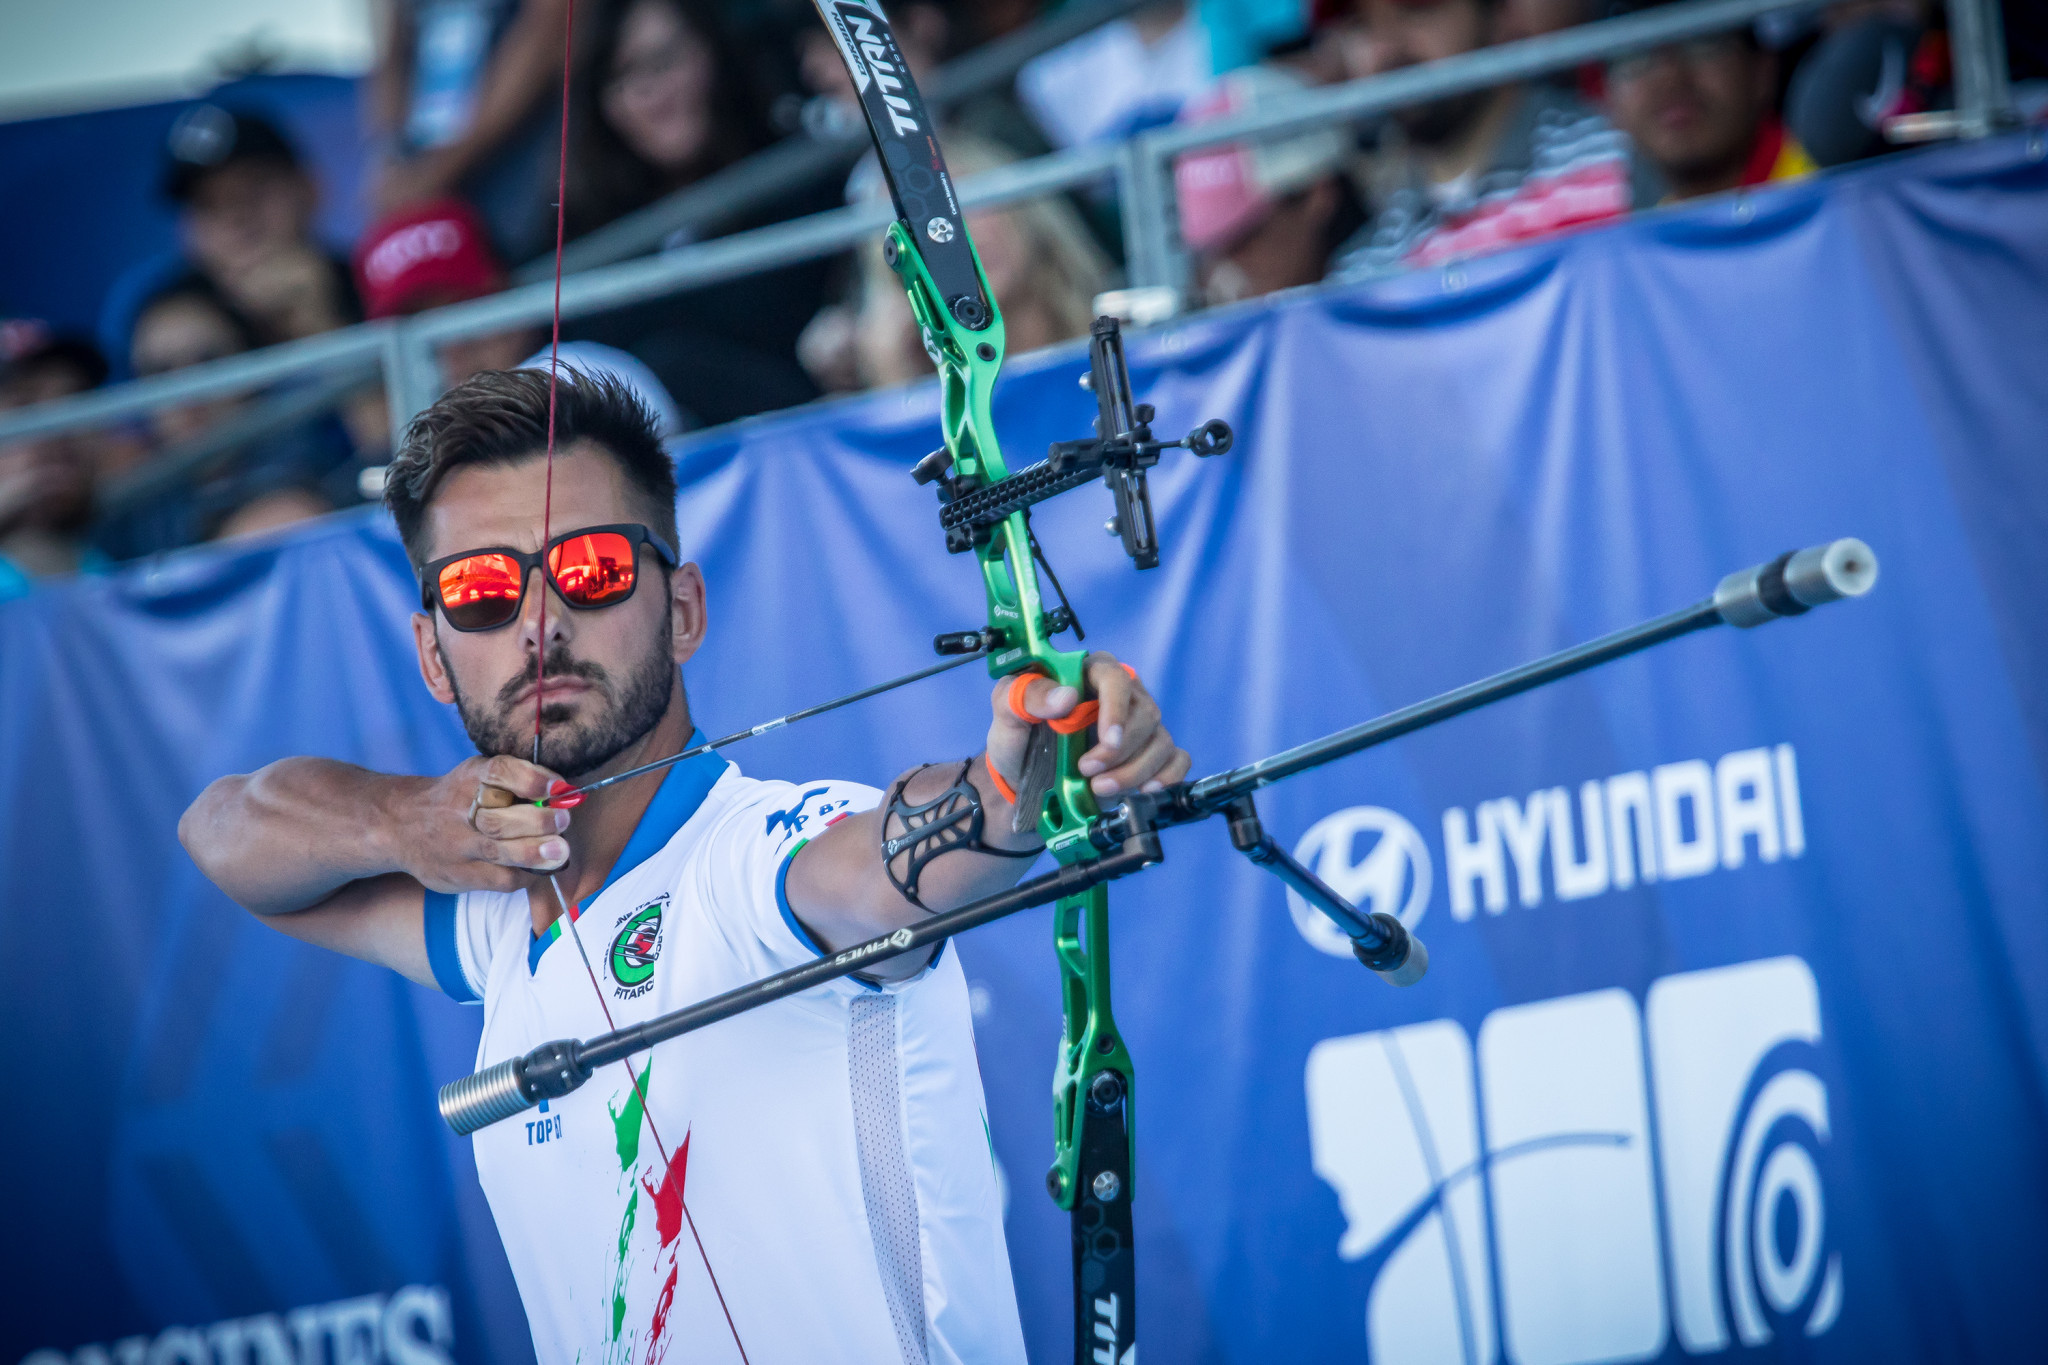 Italian Mauro Nespoli is one of three archers returning to defend their Medellin World Cup titles at this year's event ©Getty Images